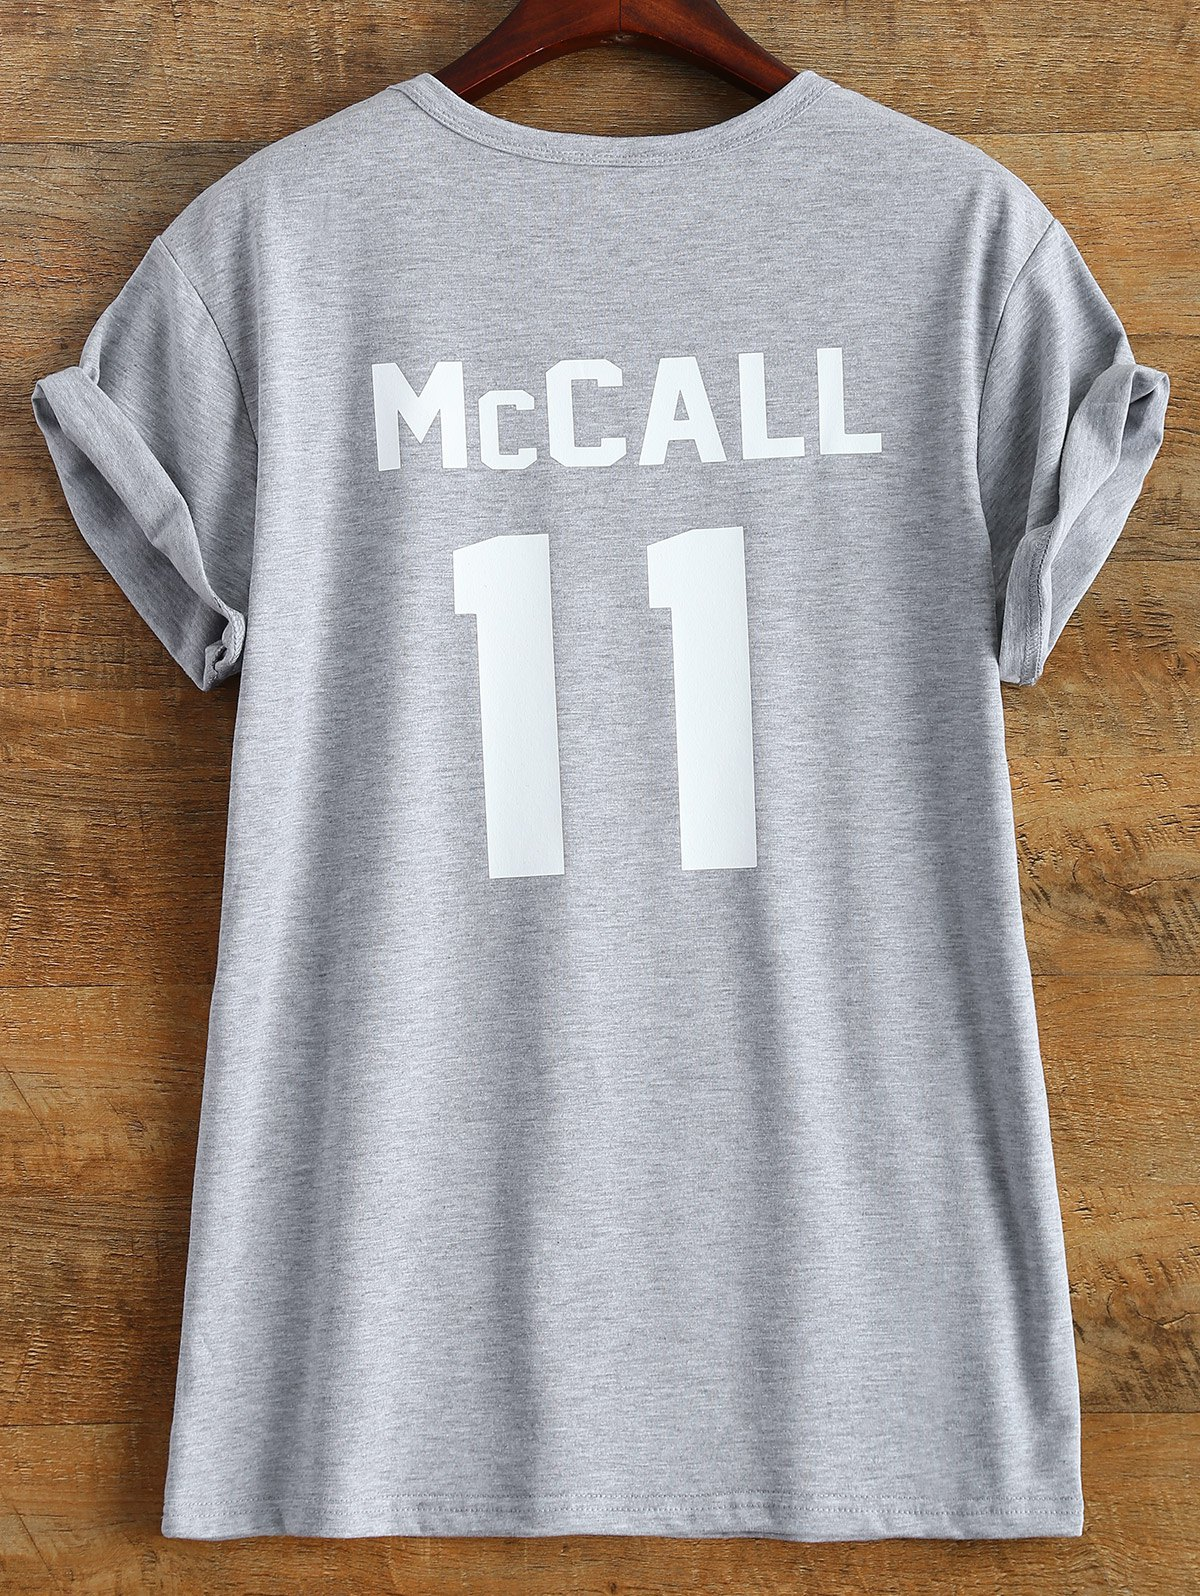 Hot Streetwear Short Sleeve McCall 11 Boyfriend Tee